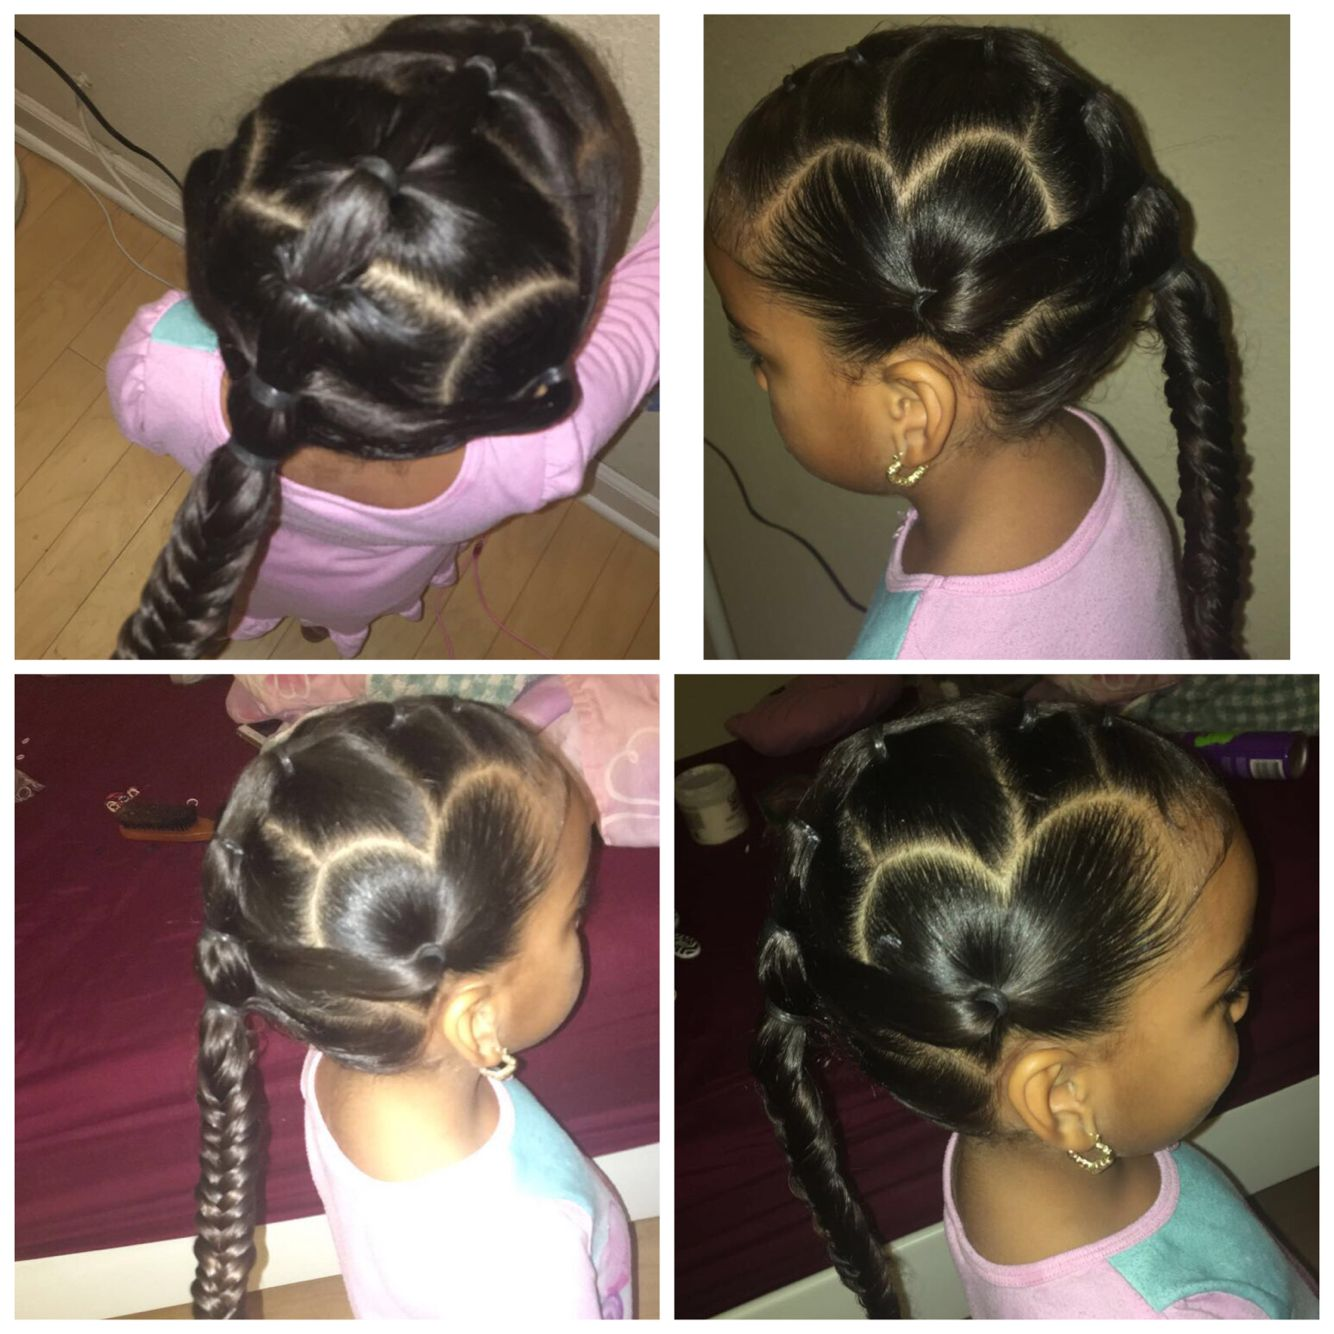 Mixed Toddler Hairstyles Mixed Kids Hairstyles Toddler Hairstyles Girl Toddler Hair